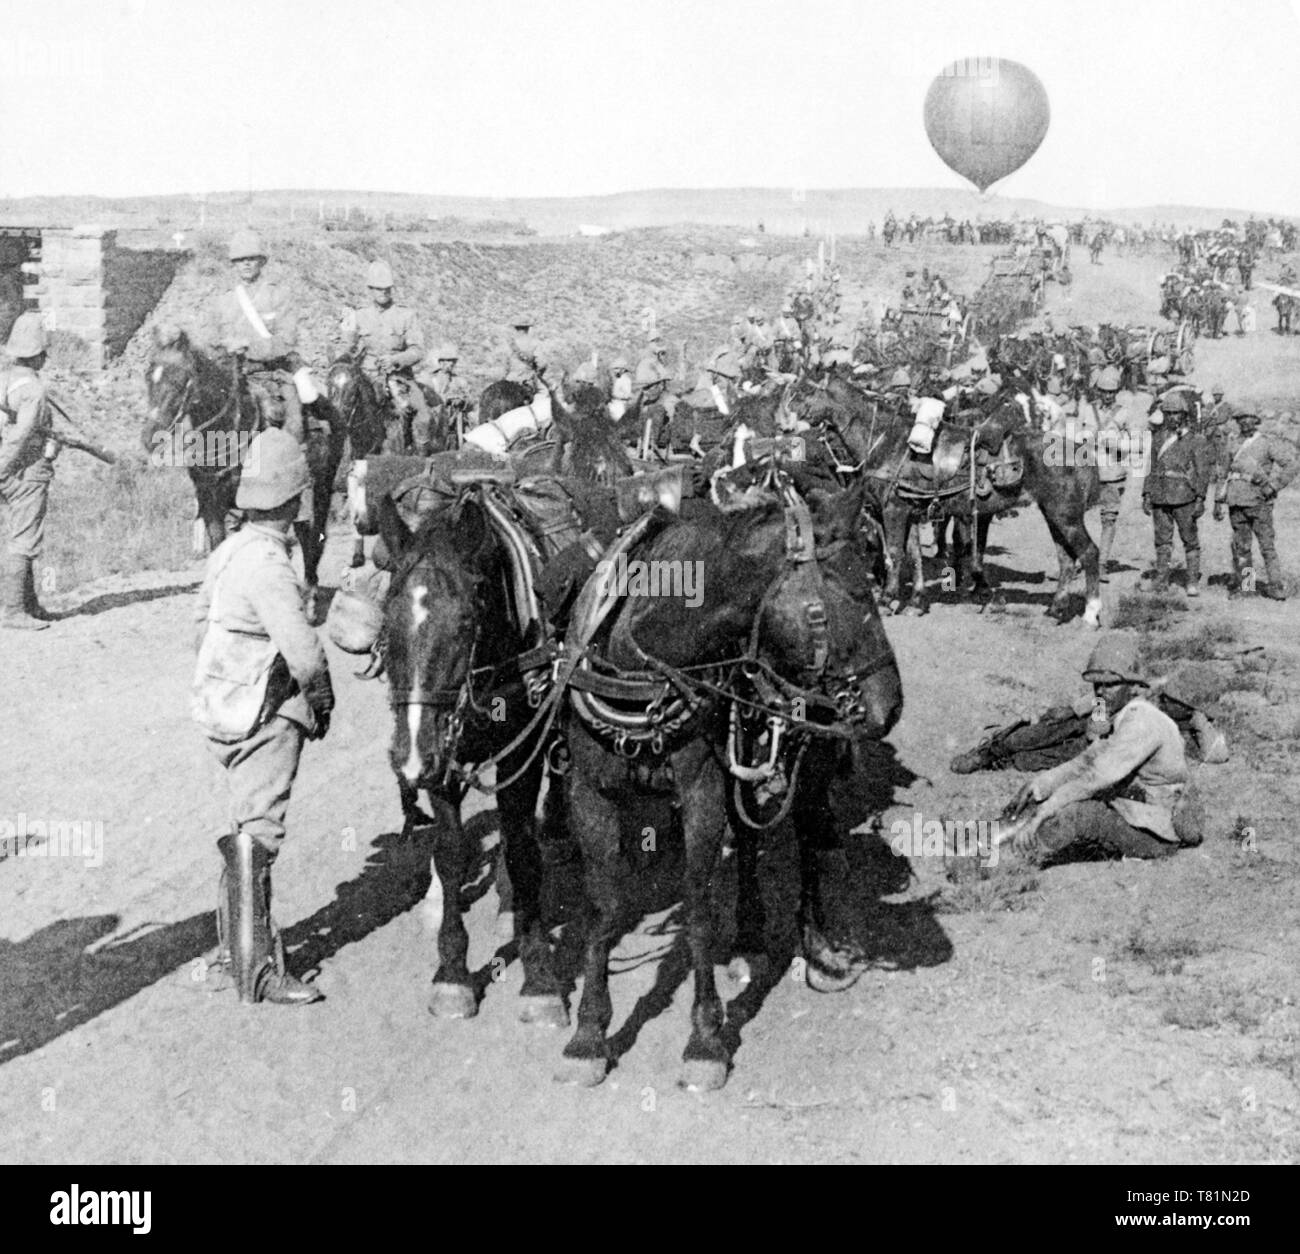 Boer War, British Army and Balloon Corps, 1900 - Stock Image